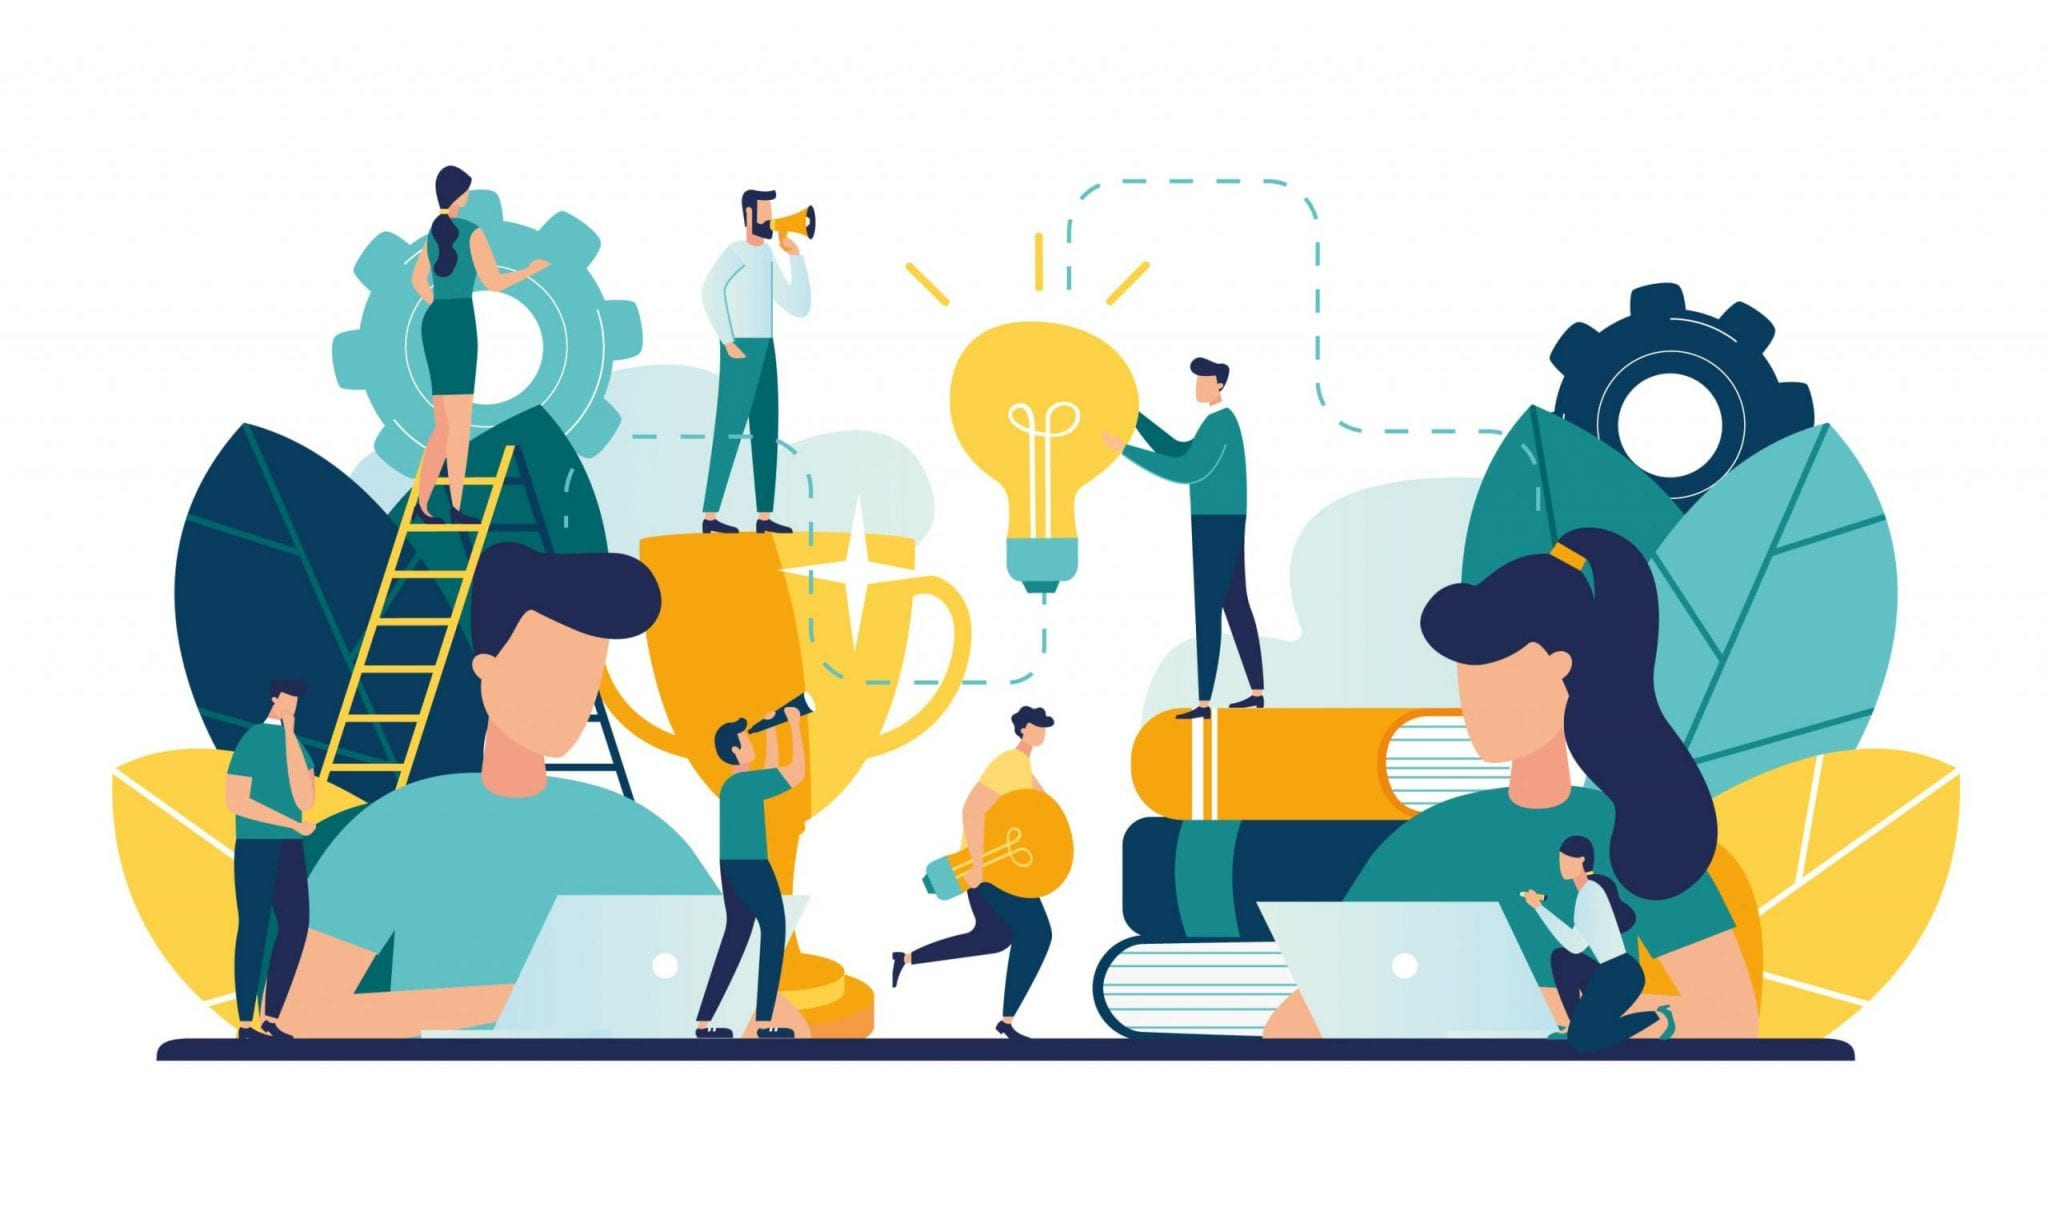 Vector Creative Illustration of Business Graphics, the Company is Engaged in Joint Construction, Raising a Career to Success, the Abstract Person's Head, Filled With Ideas of Thought and Analysis.